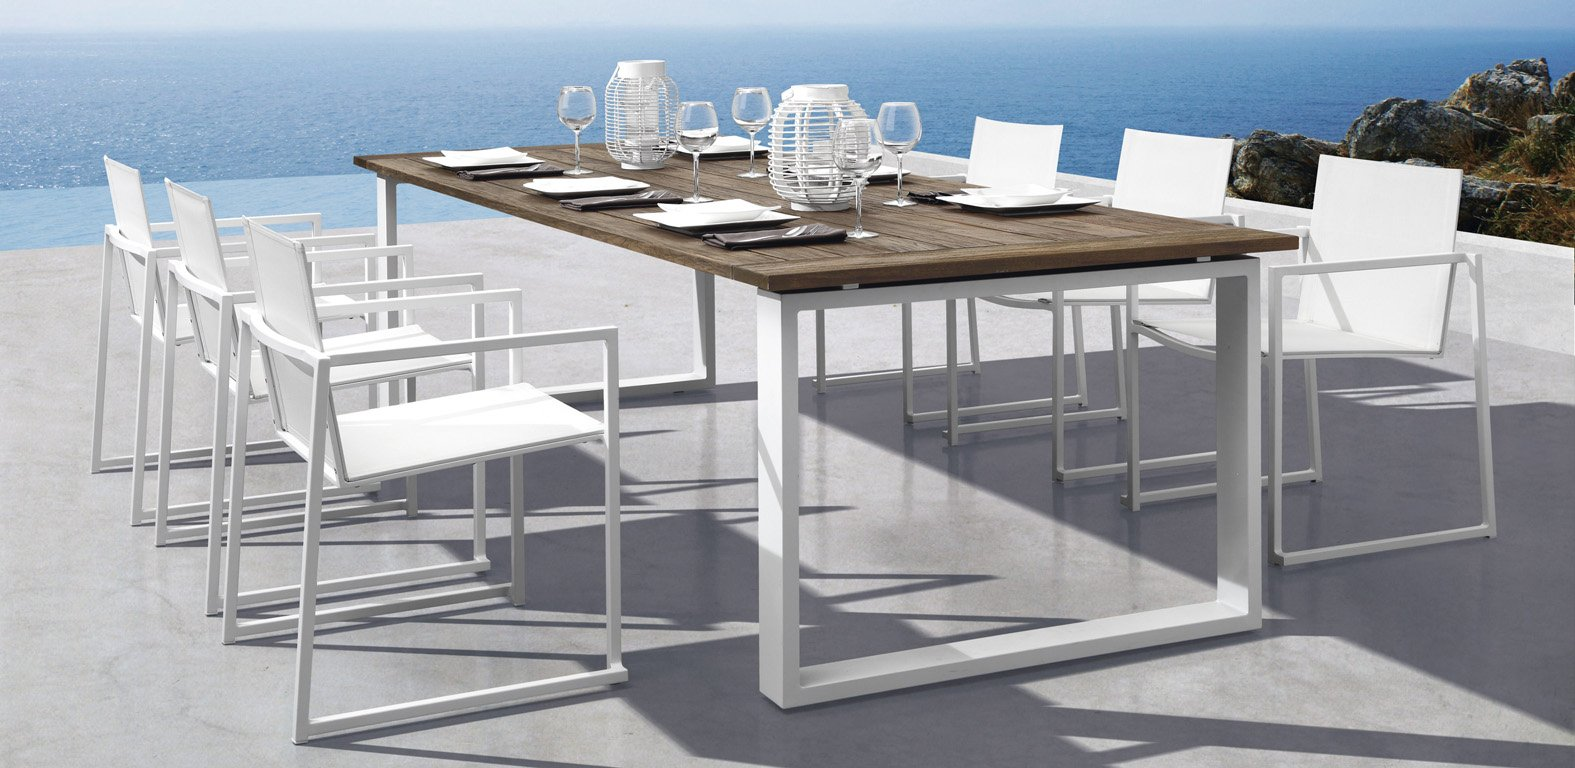 Moderne Tuinset Silla Comedor Exterior Muebles